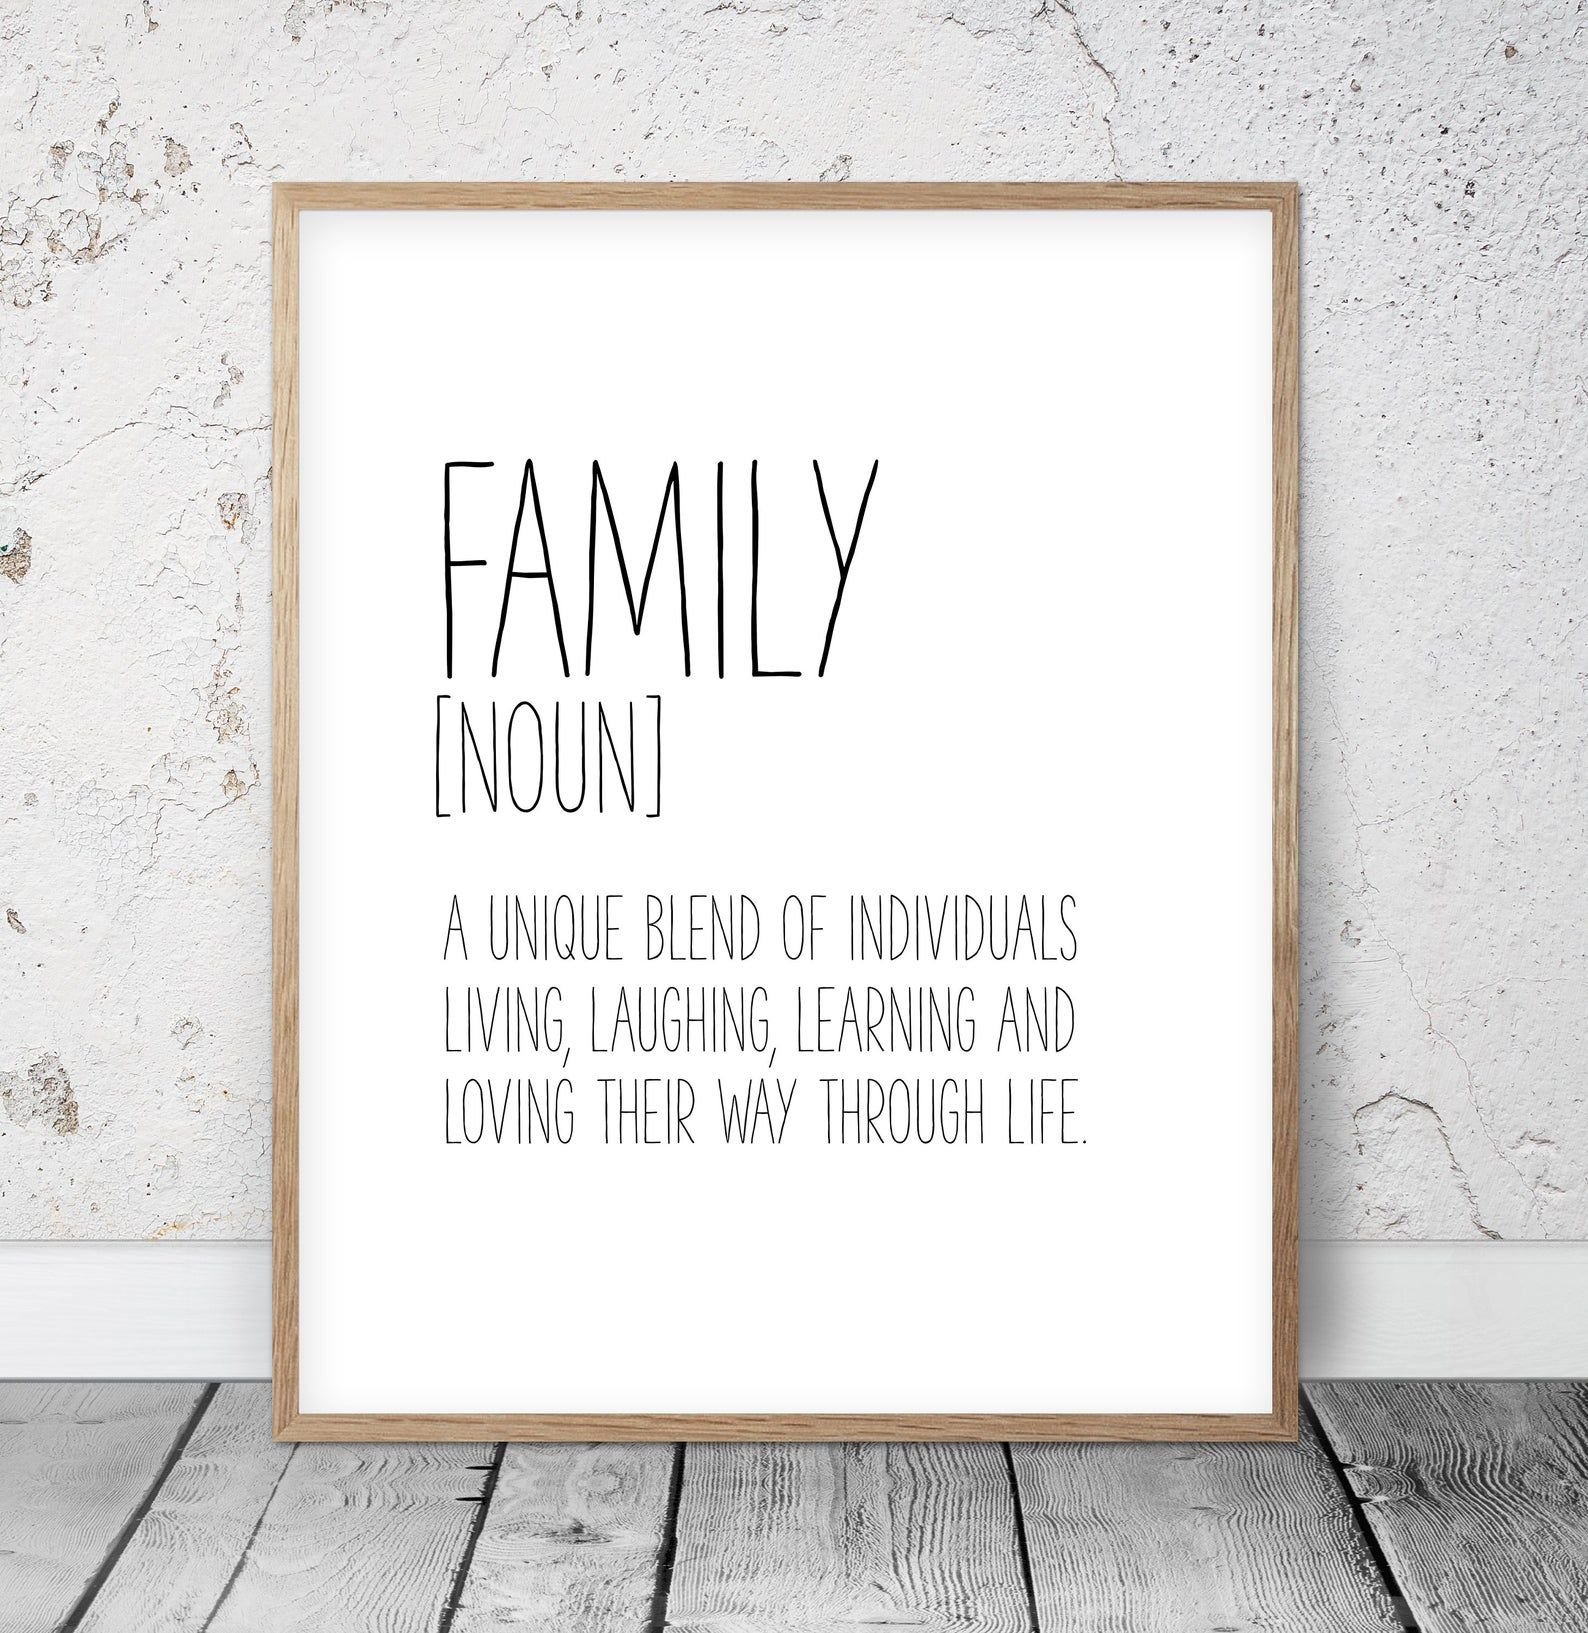 Family Definition Funny Family Sign Funny Definition Print Family Print Family Printable Wall Art Funny Family Quotes Moden Nursery Art Family Quotes Funny Family Definition Family Humor